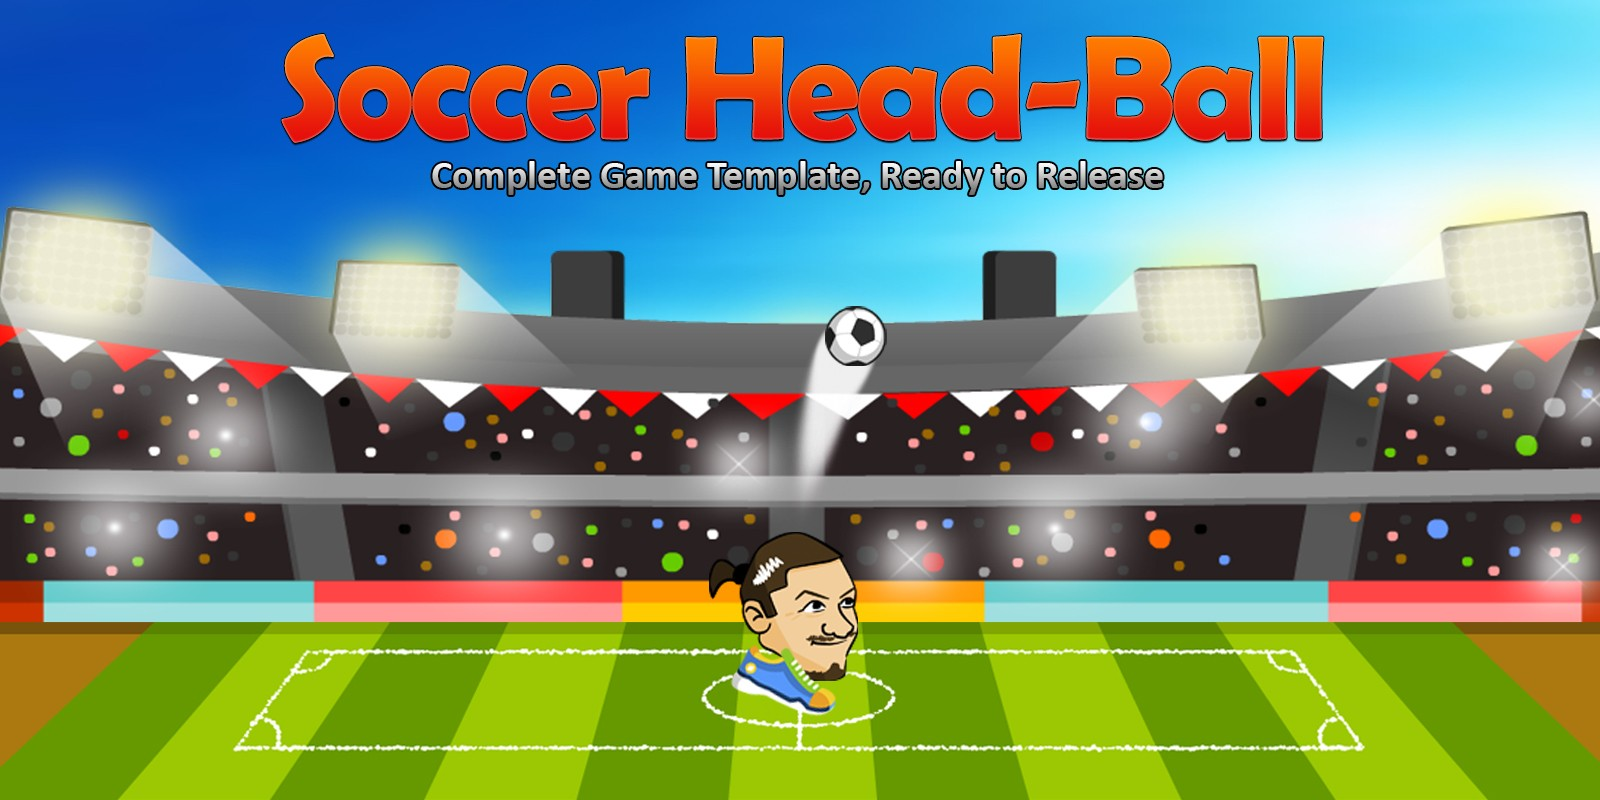 Soccer Head-Ball - Complete Unity Project